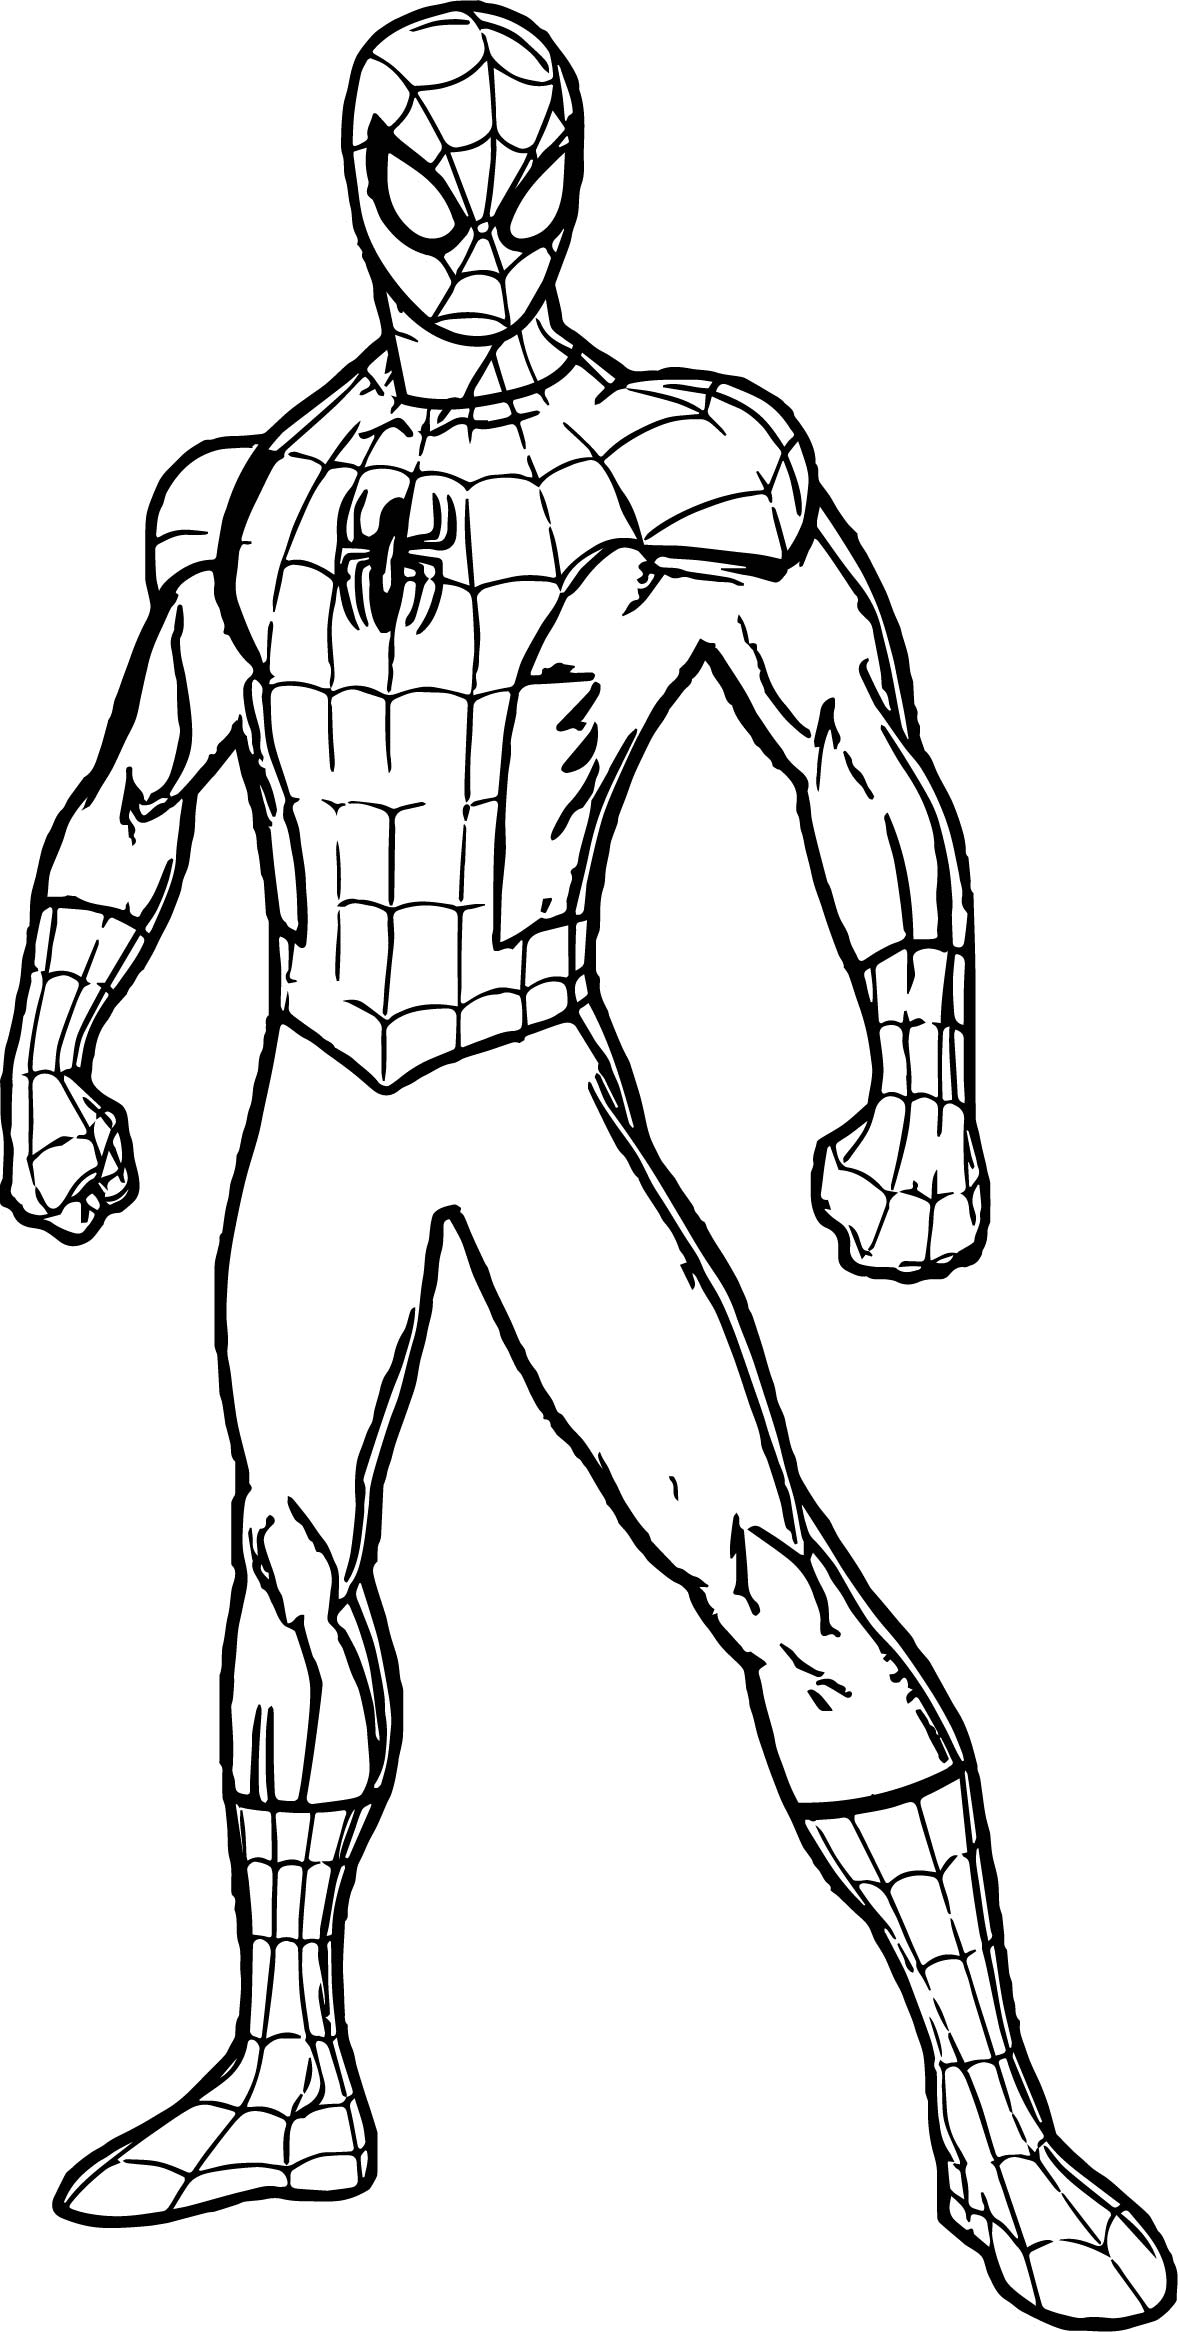 Spiderman Coloring Pages Download 16s - Free For kids